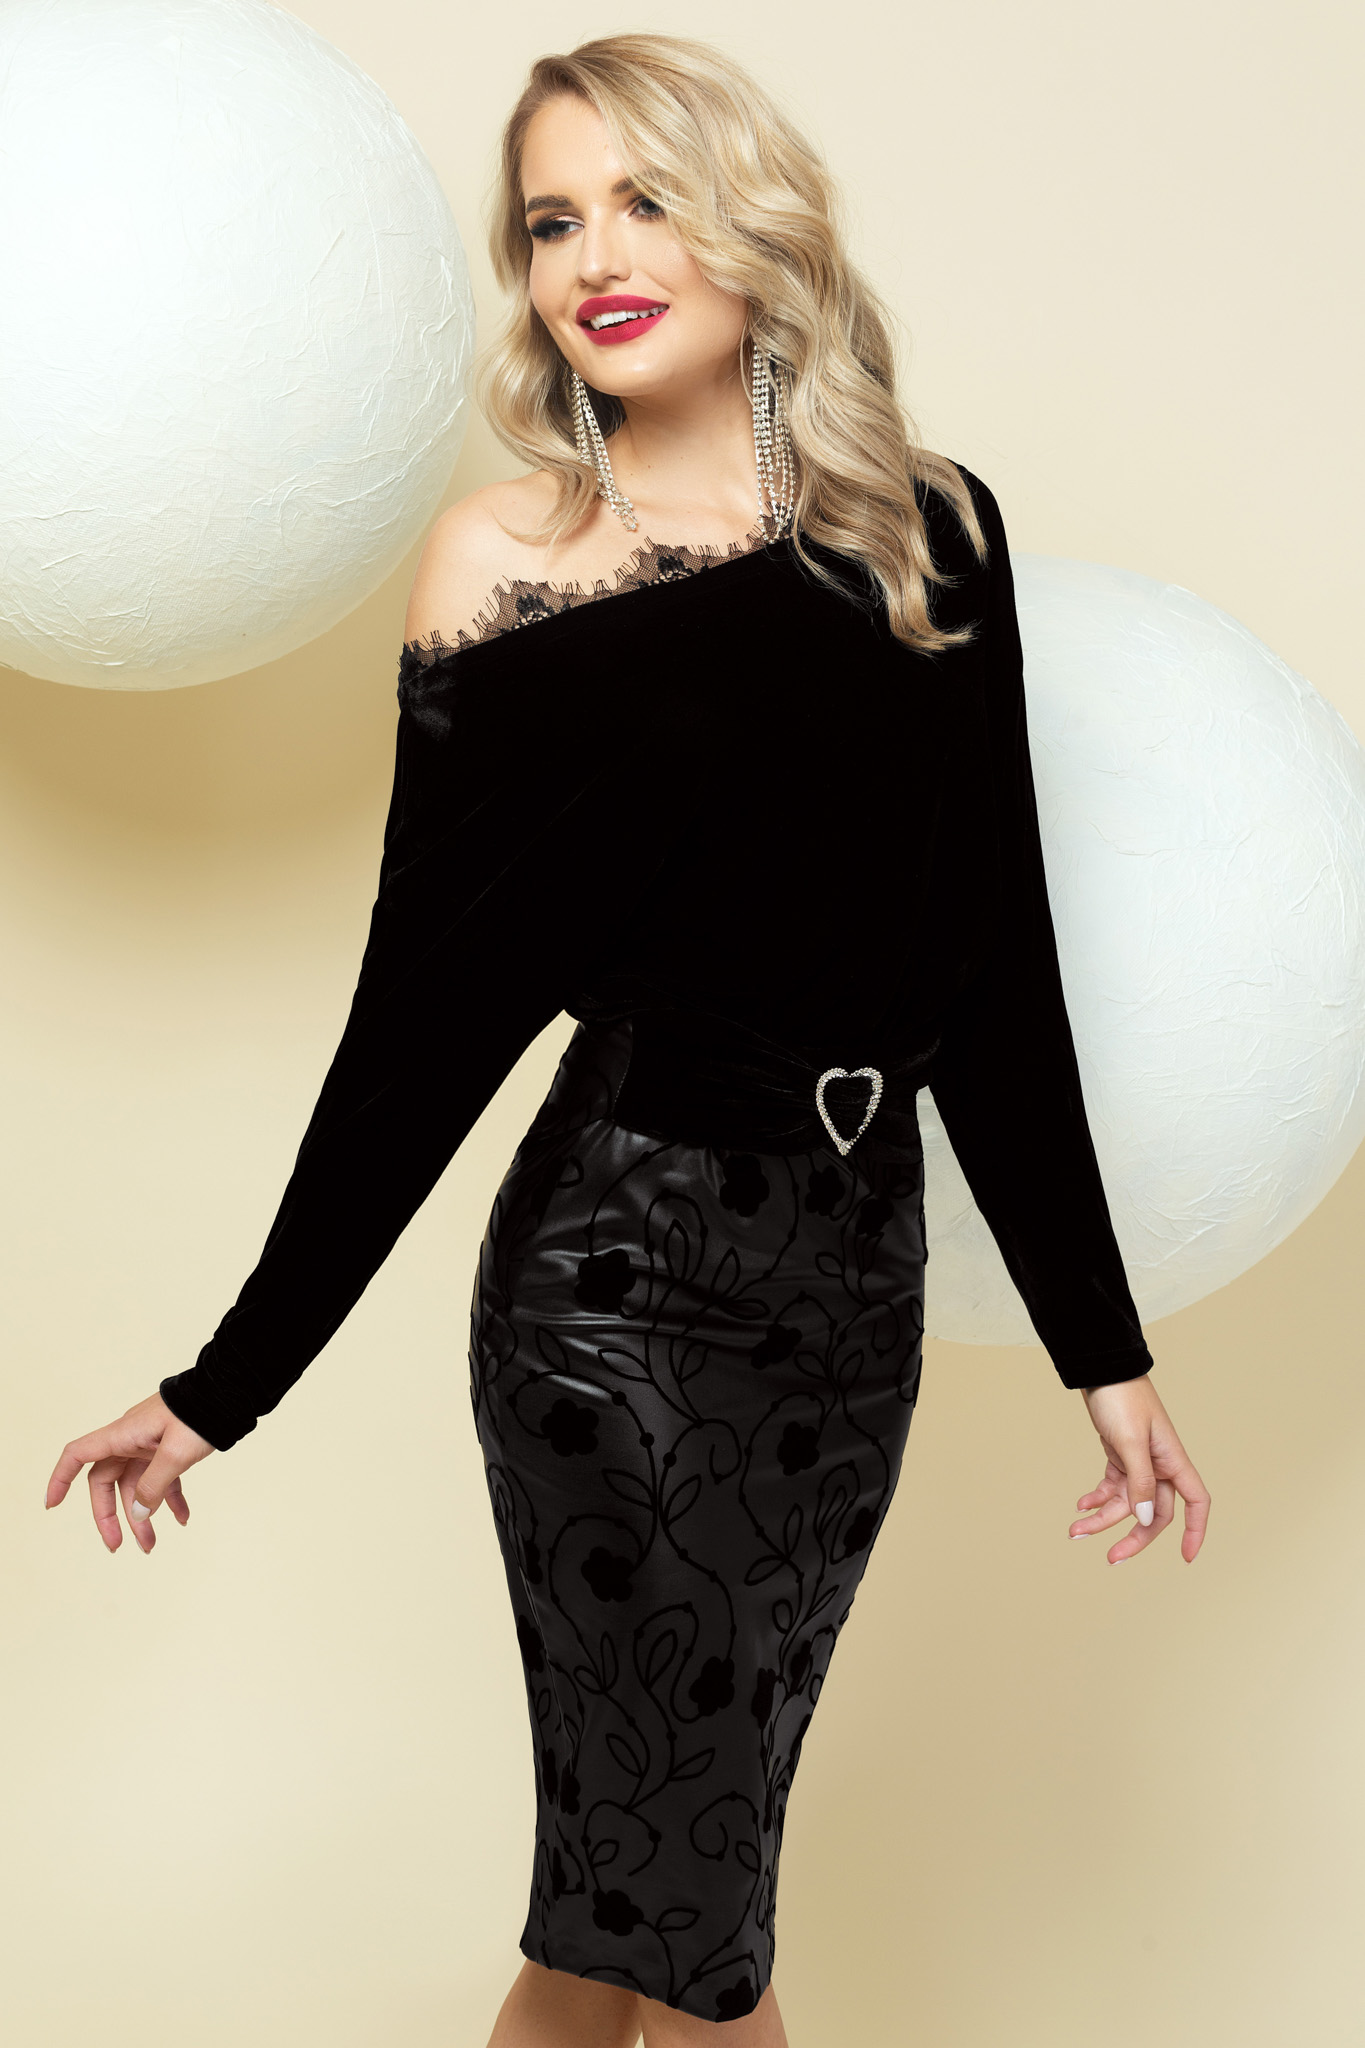 Dress black pencil one shoulder with lace details occasional